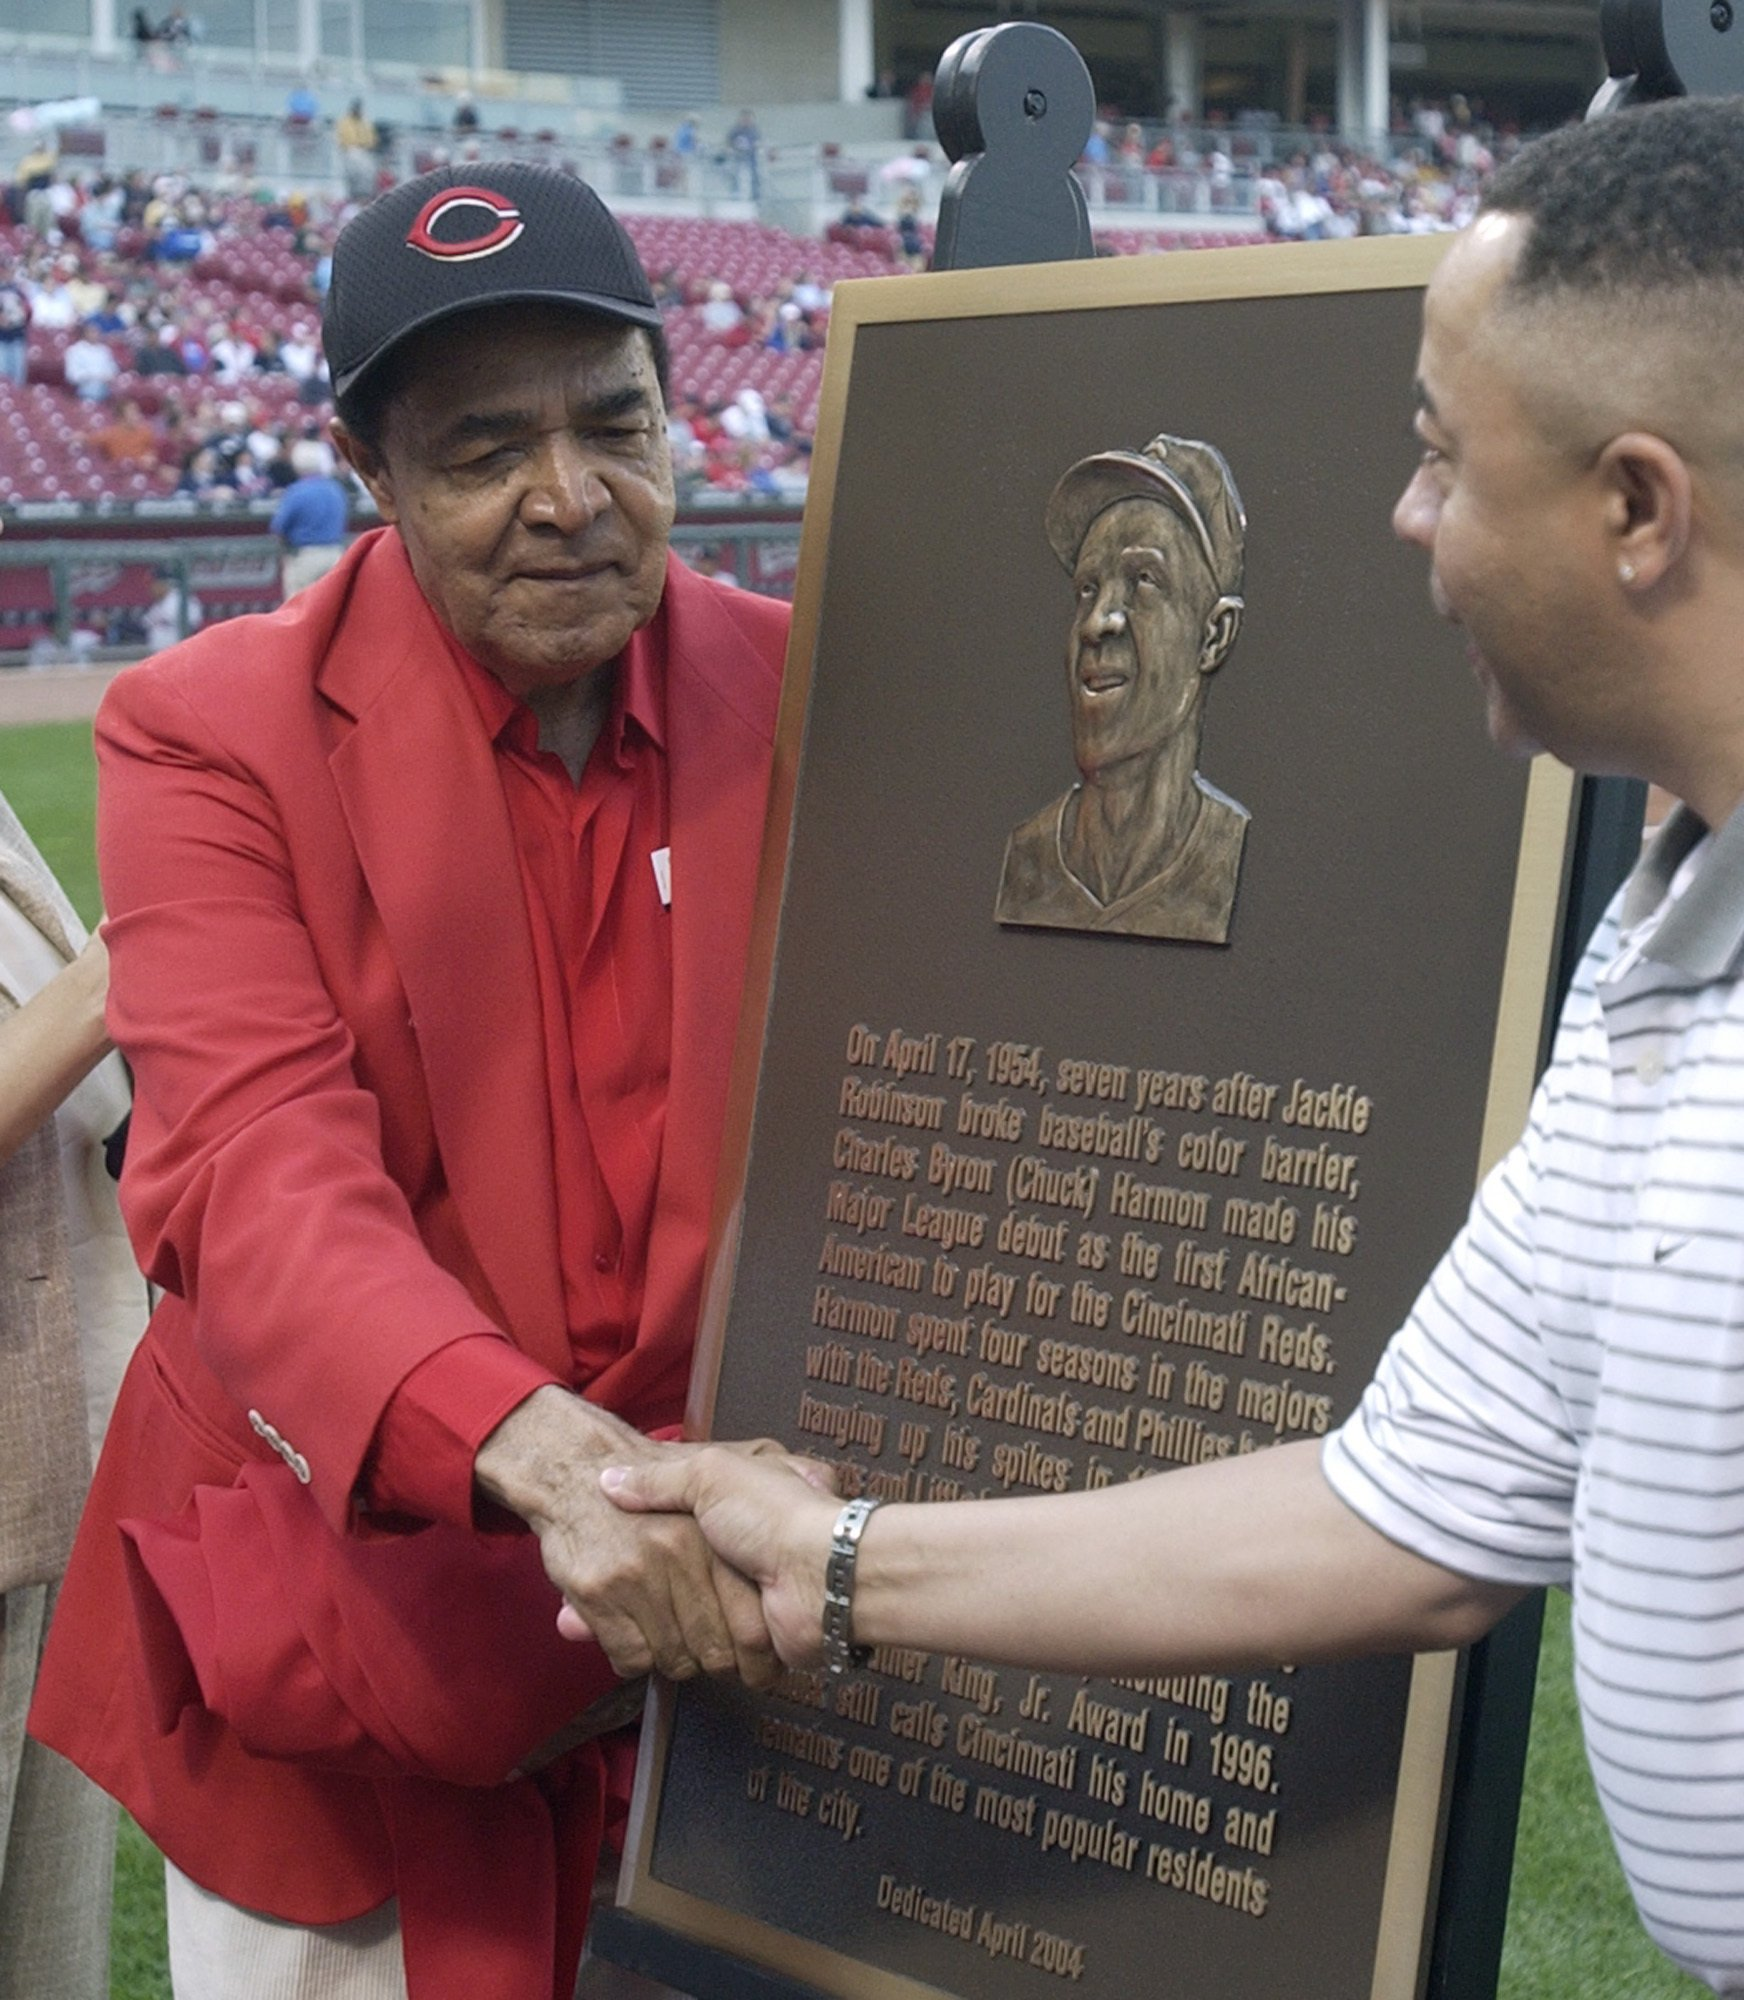 Cincinnati Reds' first African-American player dead at 94